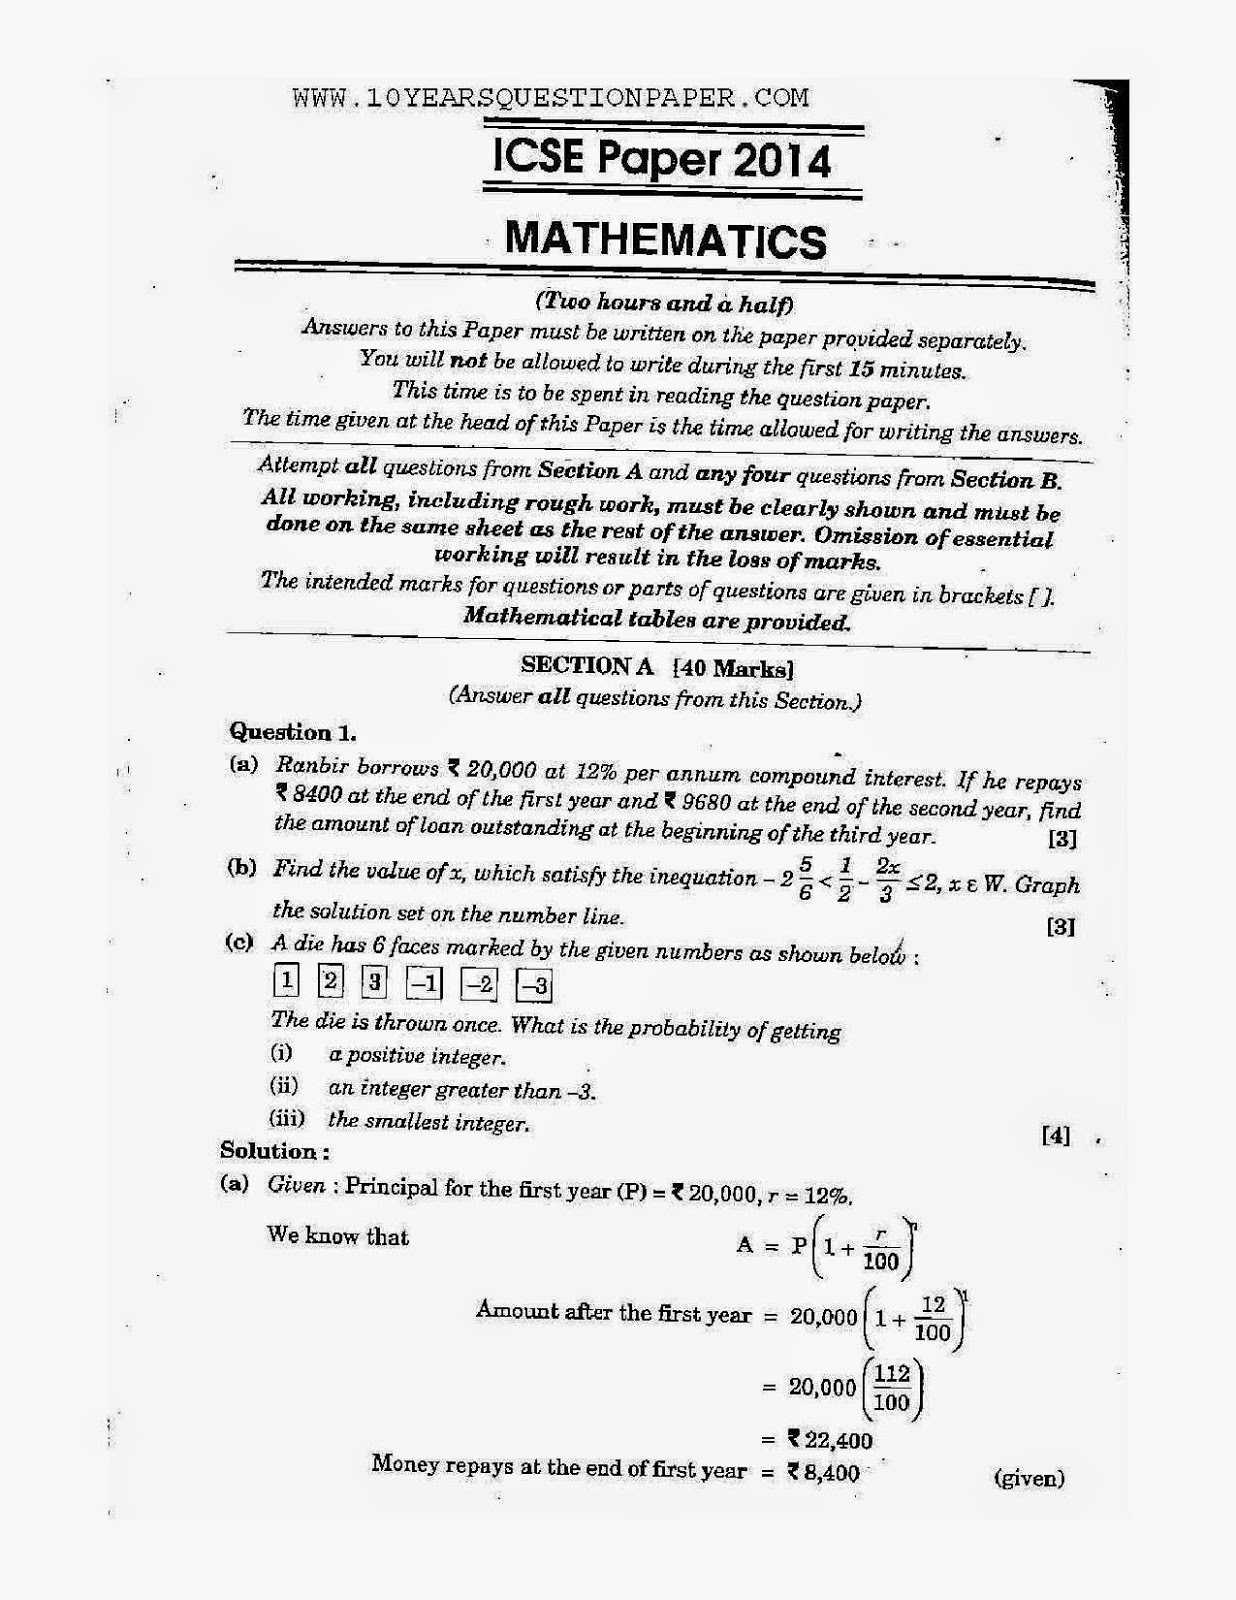 Icse maths 2014 solved question paper class 10 10 years question icse class 10th mathematics solved question paper 2014 malvernweather